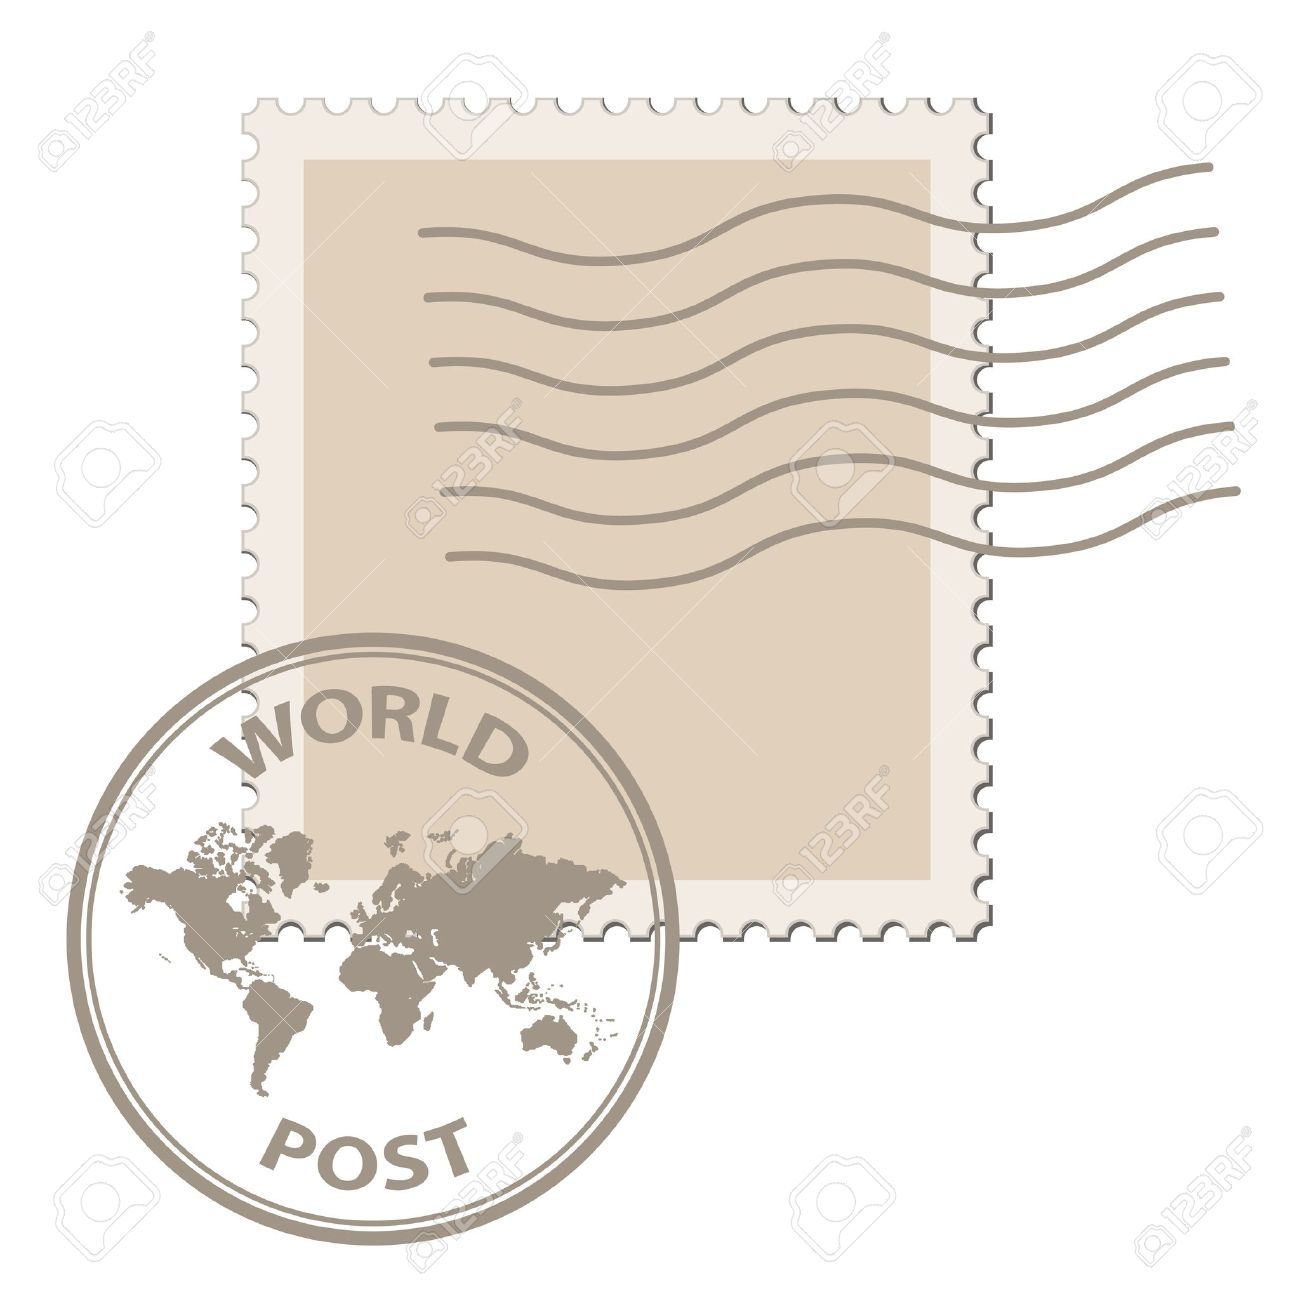 vector blank post stamp with world map postmark Stock Vector - 11525352